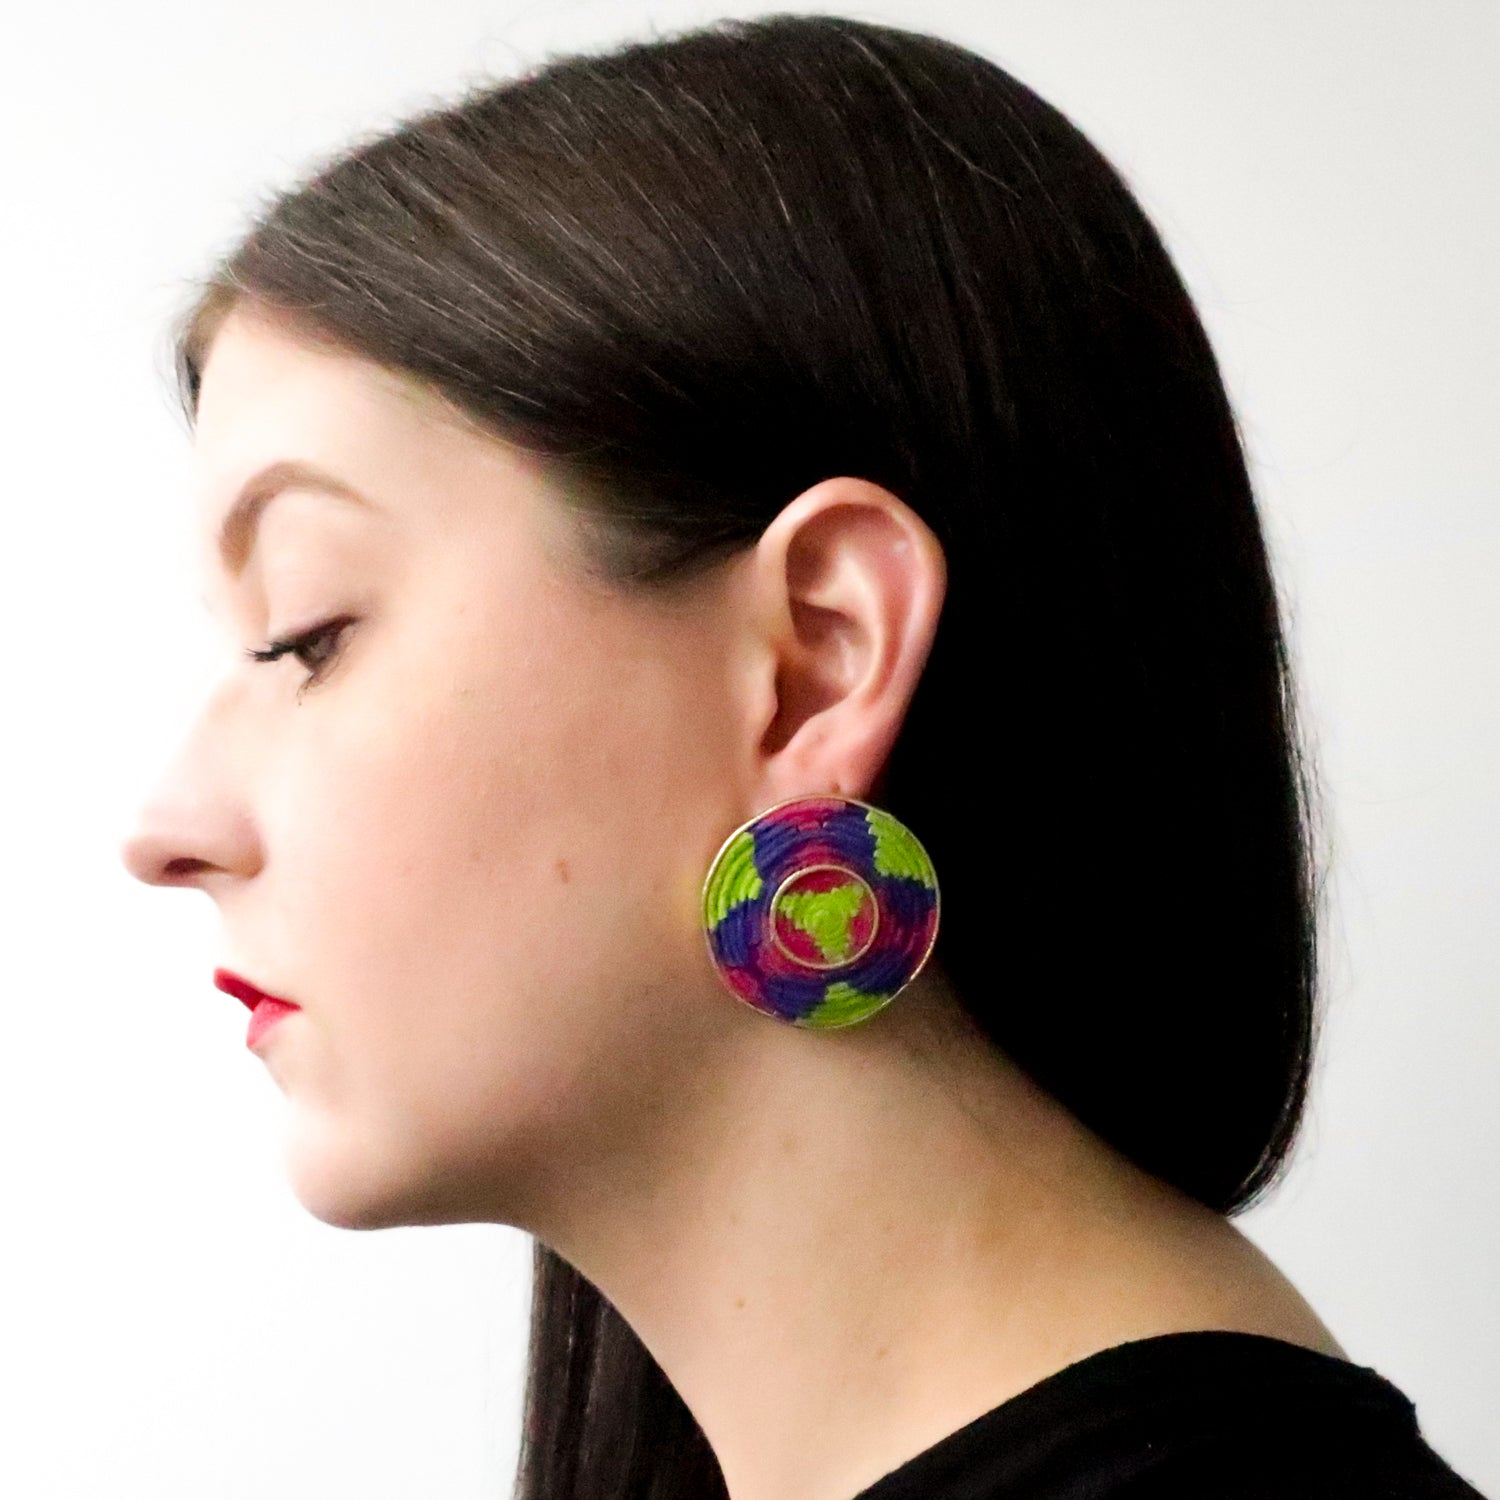 Second Room Vintage Clothing. These earrings are handmade out of suede leather, with an inset design in bright neon pink, purple and lime green. Free North American shipping on all orders.